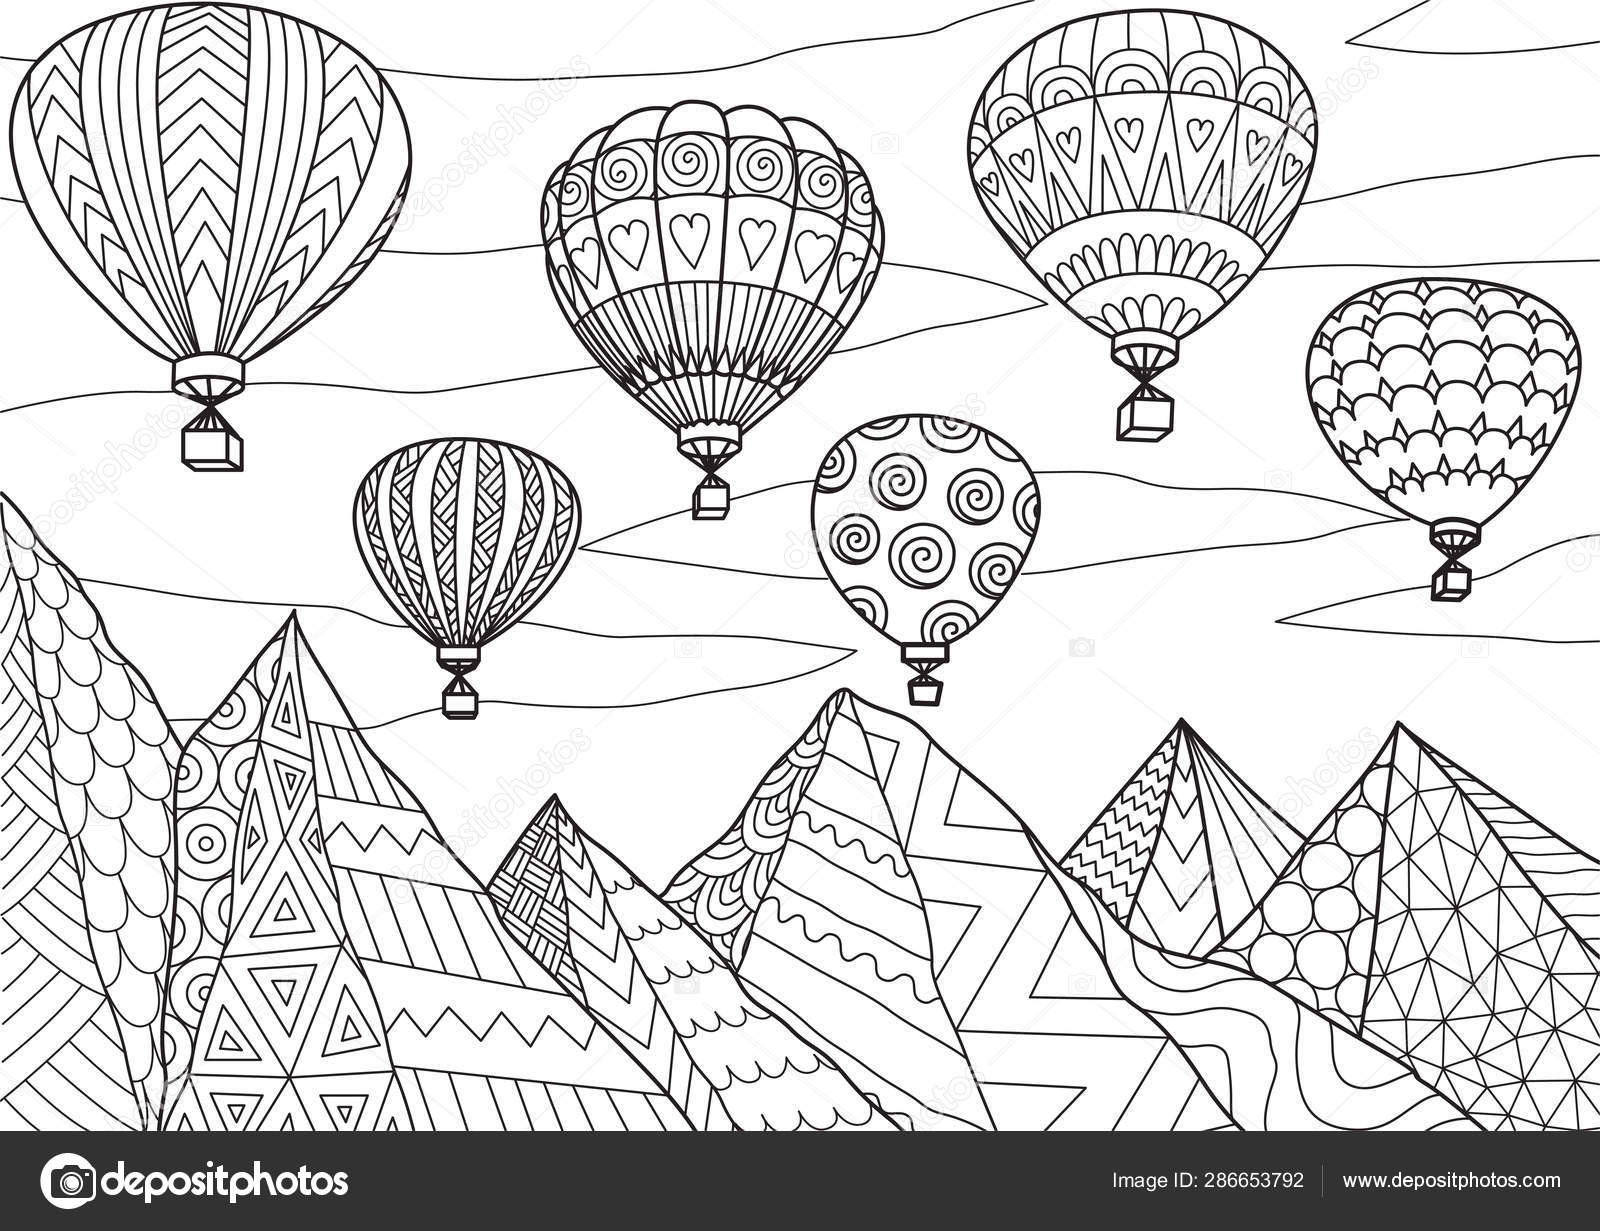 Line Art Drawing Beautiful Hot Air Balloons Flying Mountains Summer Vector Image By C Somjaicindy Gmail Com Vector Stock 286653792